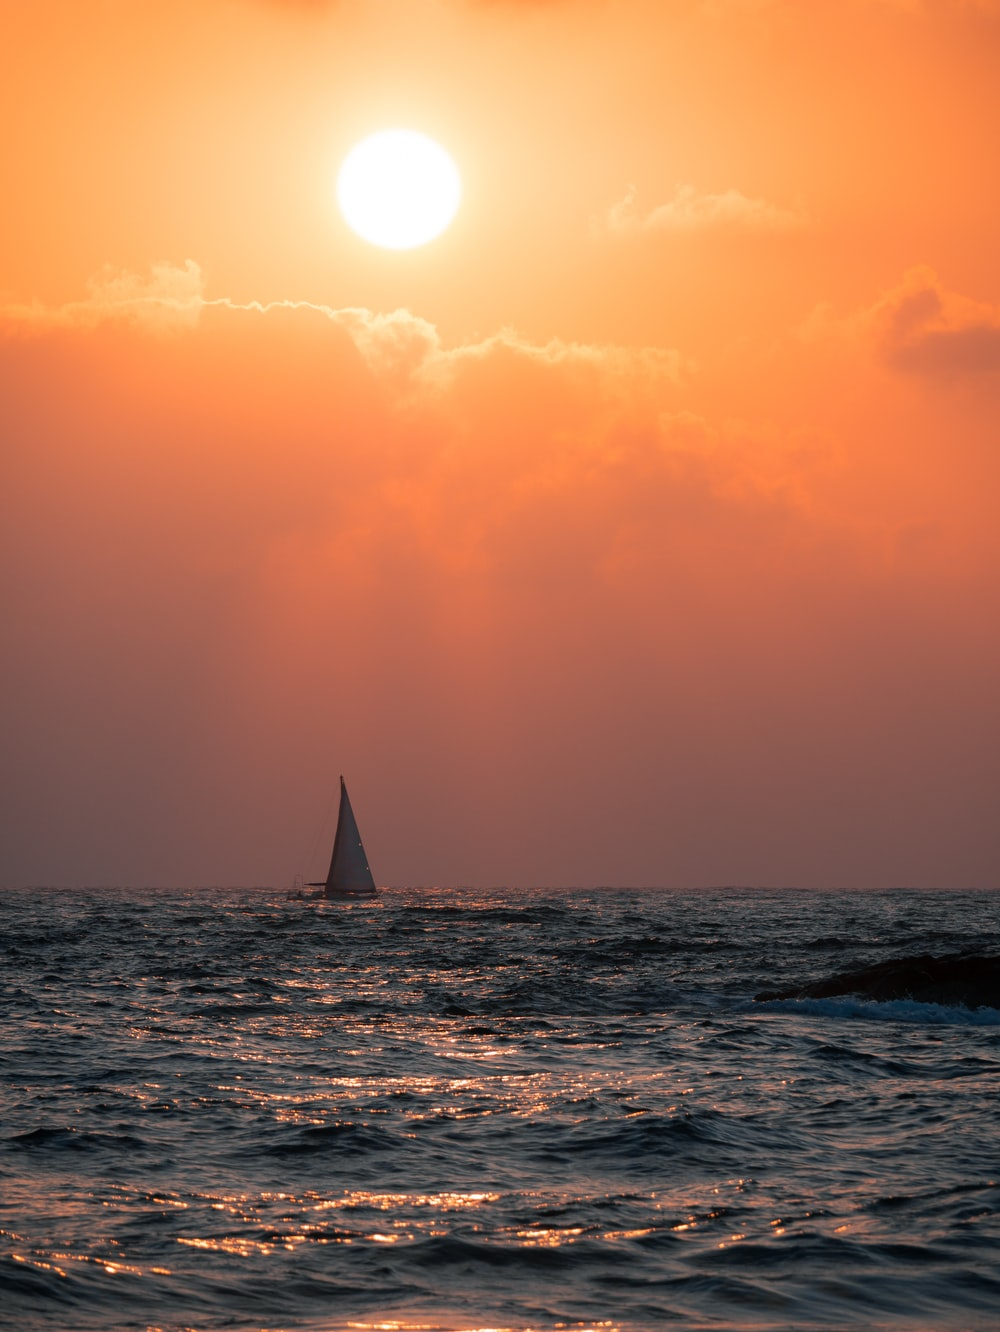 sailing boat on sea during daytime